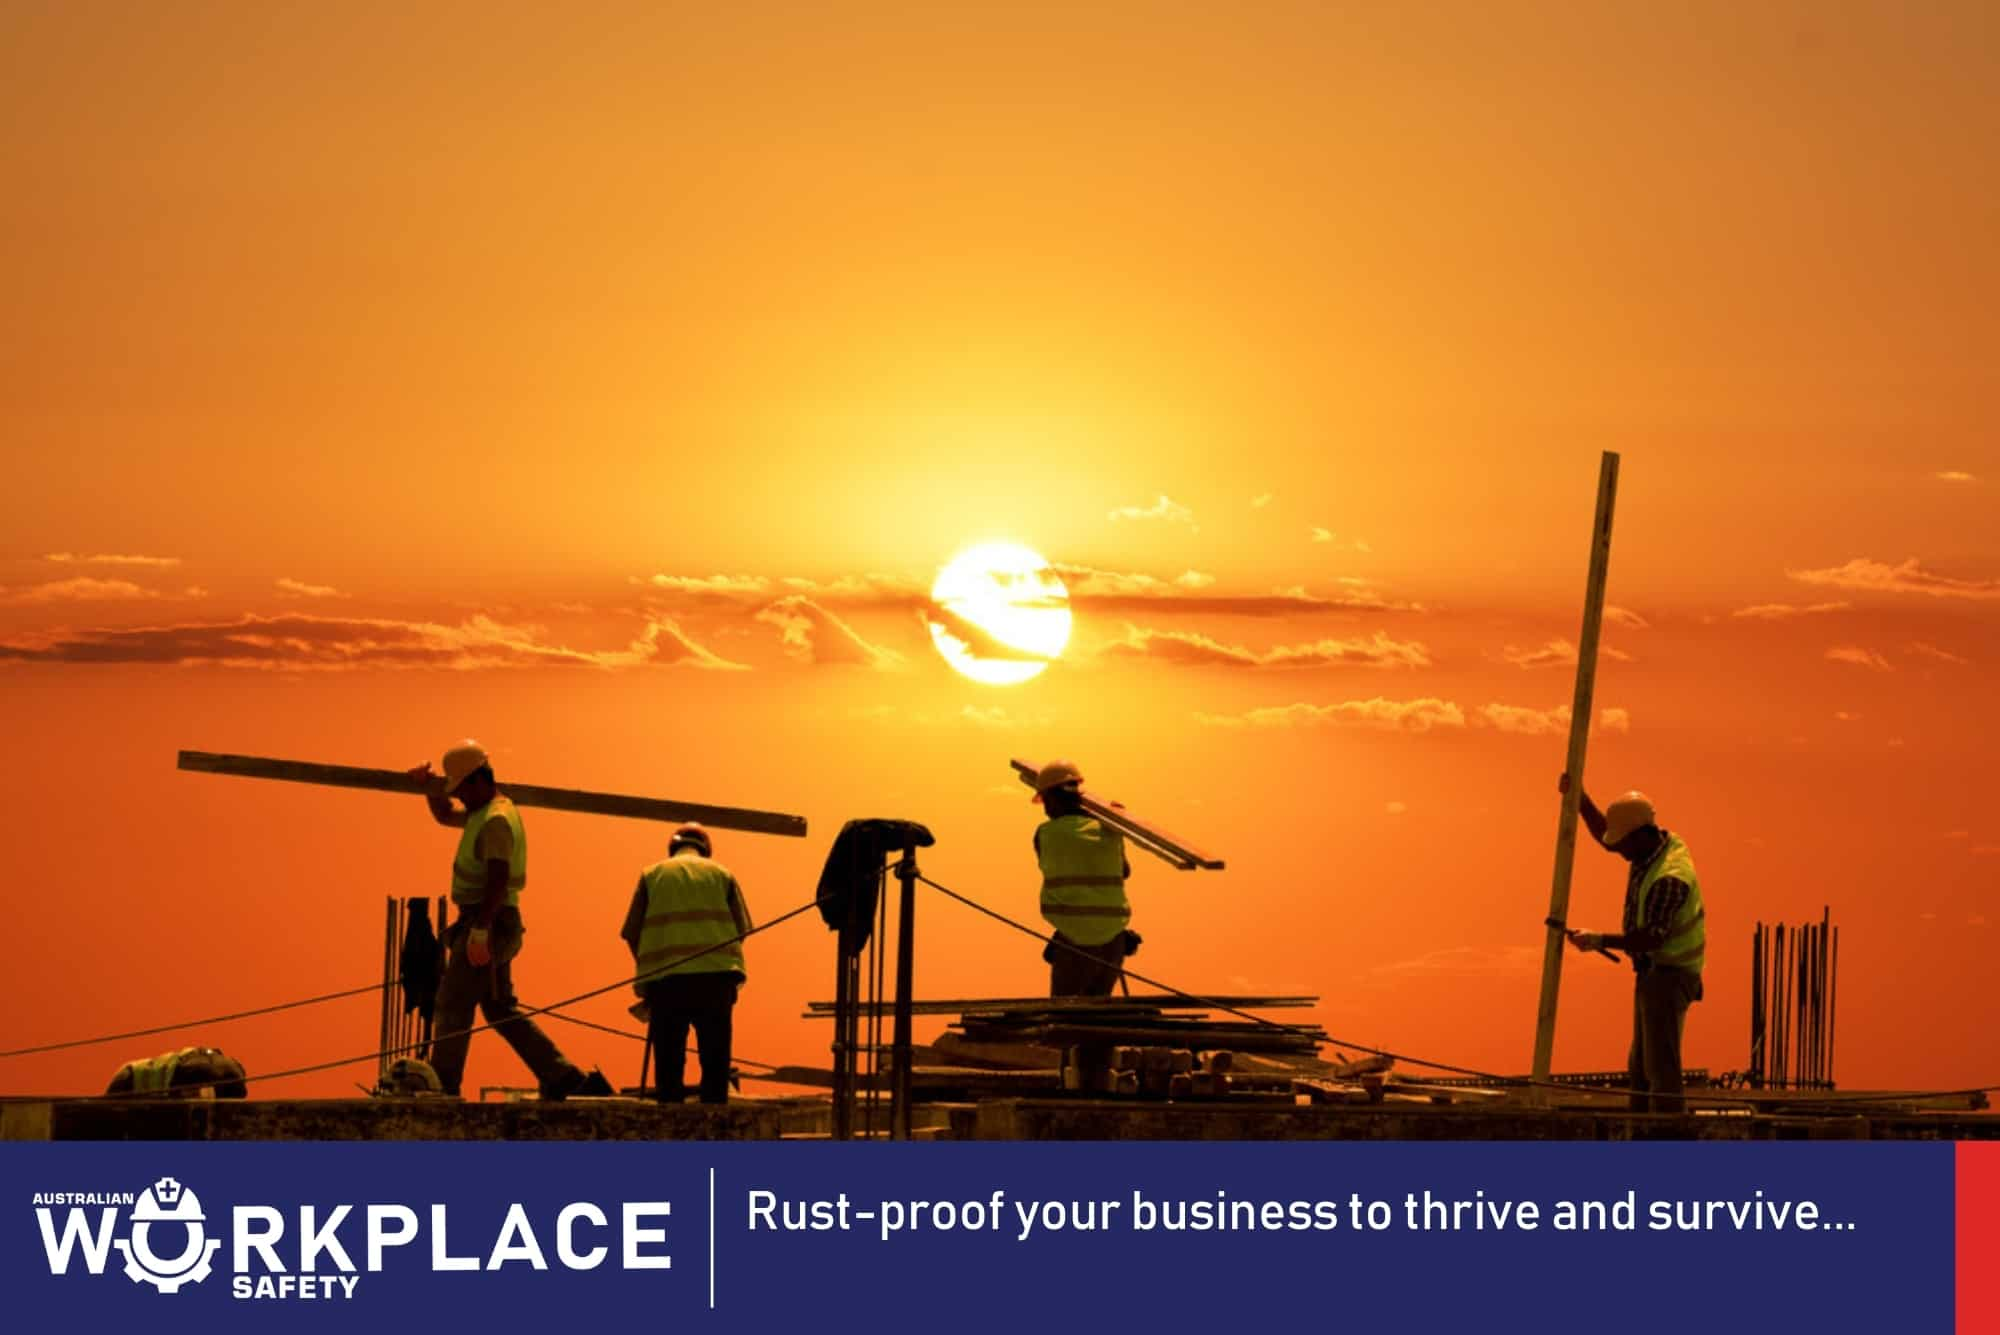 Home » Workplace Safety